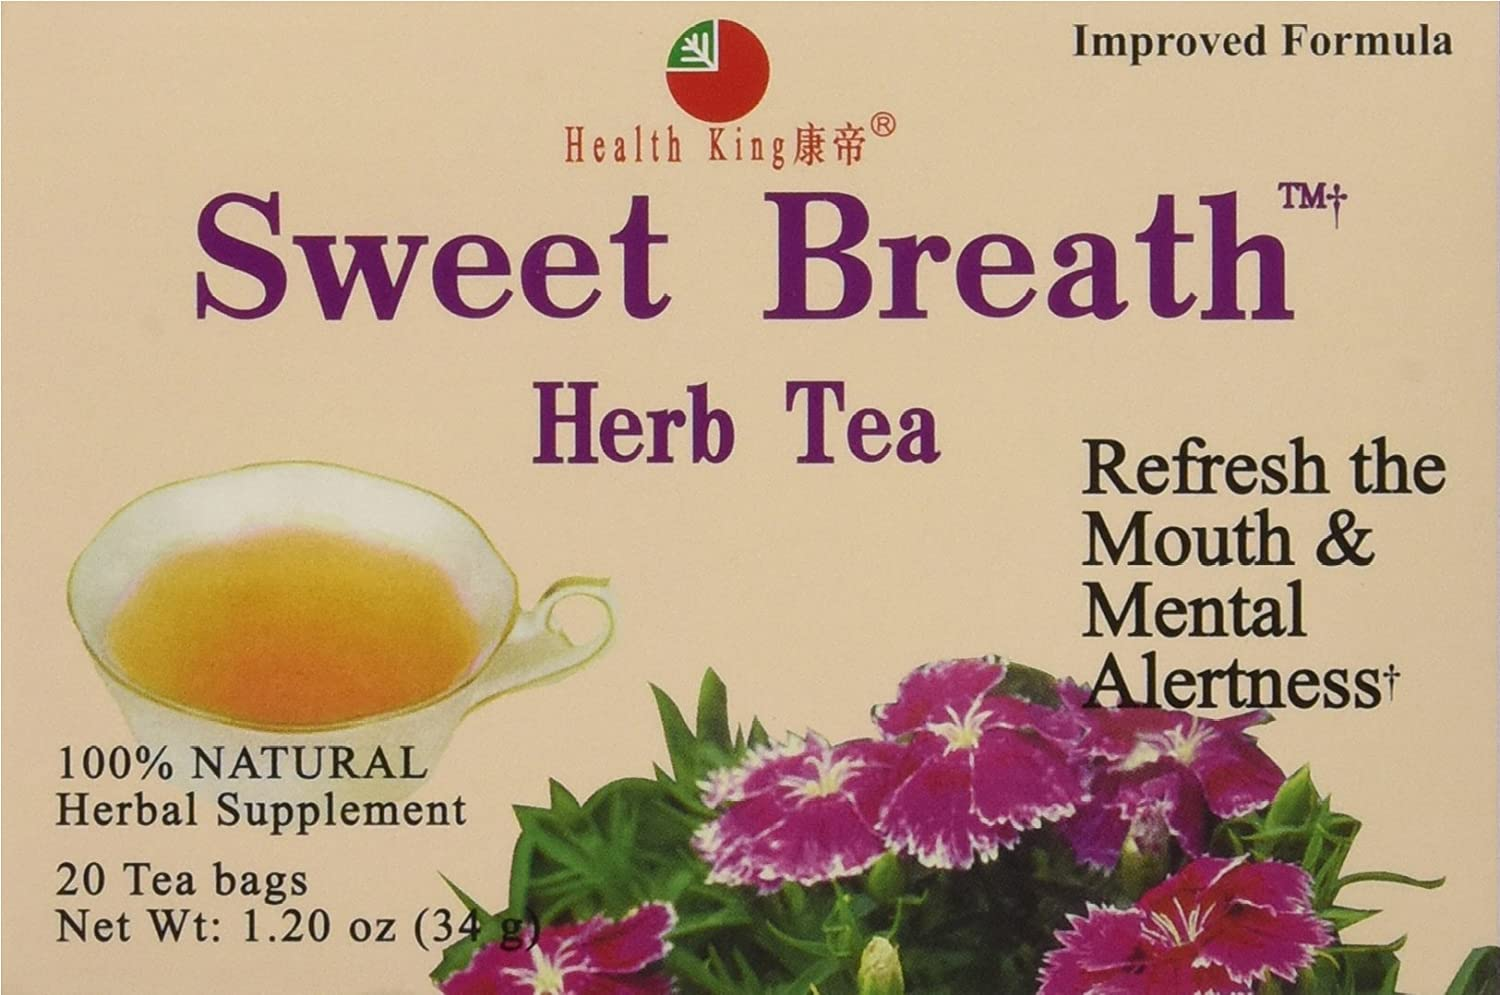 Health King Sweet Breath Herb Tea, Teabags, 20 Count Box